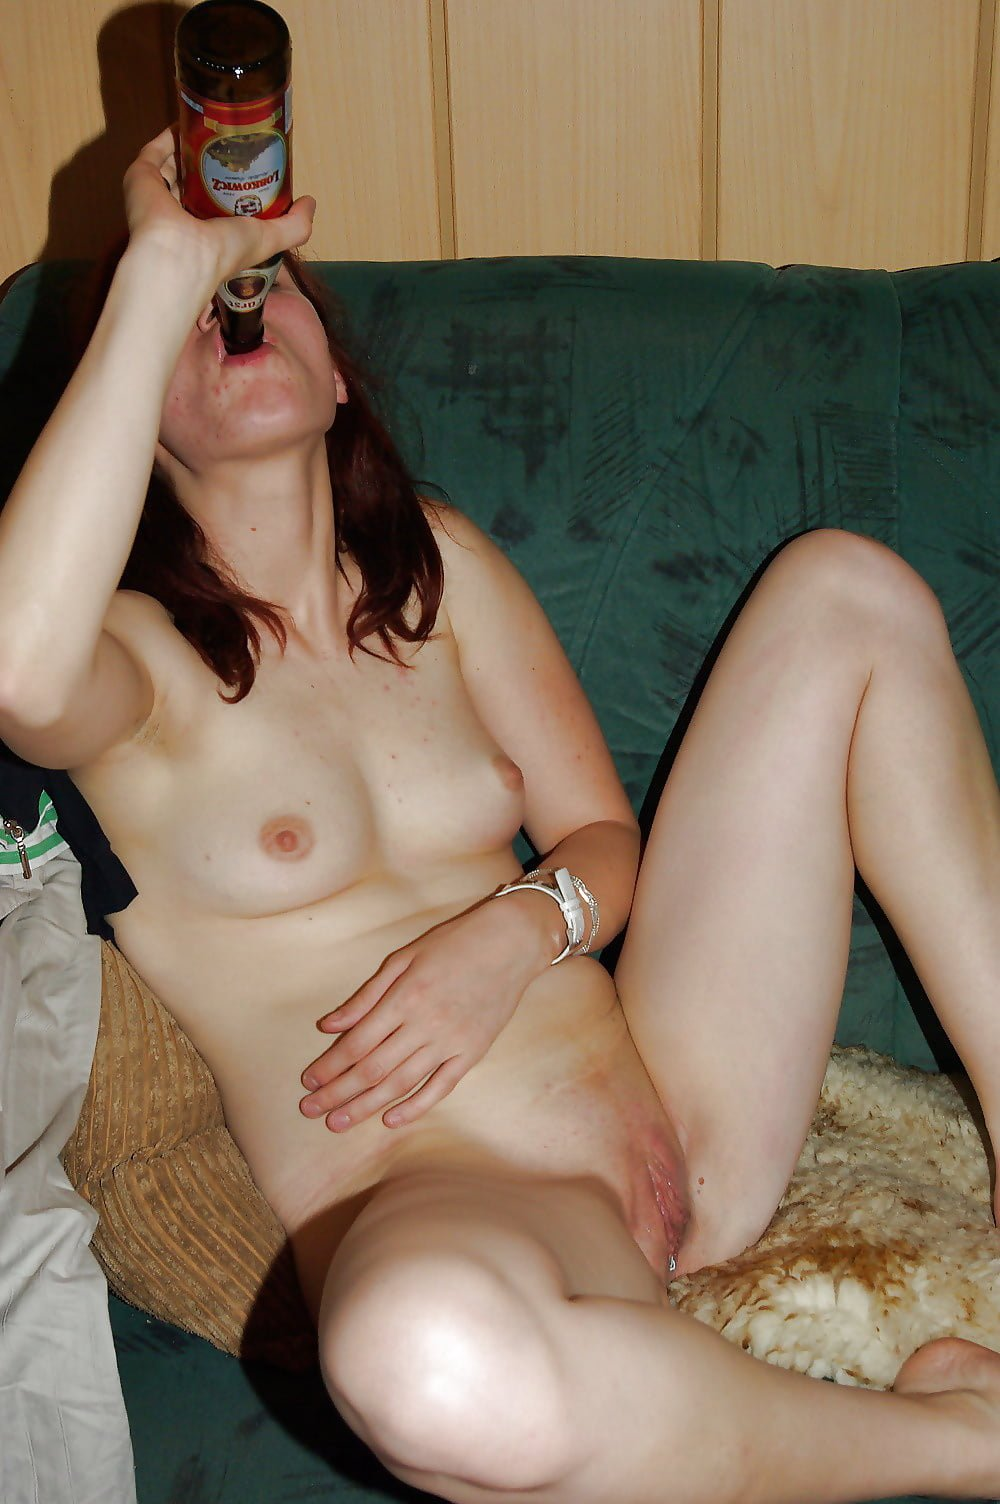 Sleeping drunk caught meaty pussy nude girls pictures